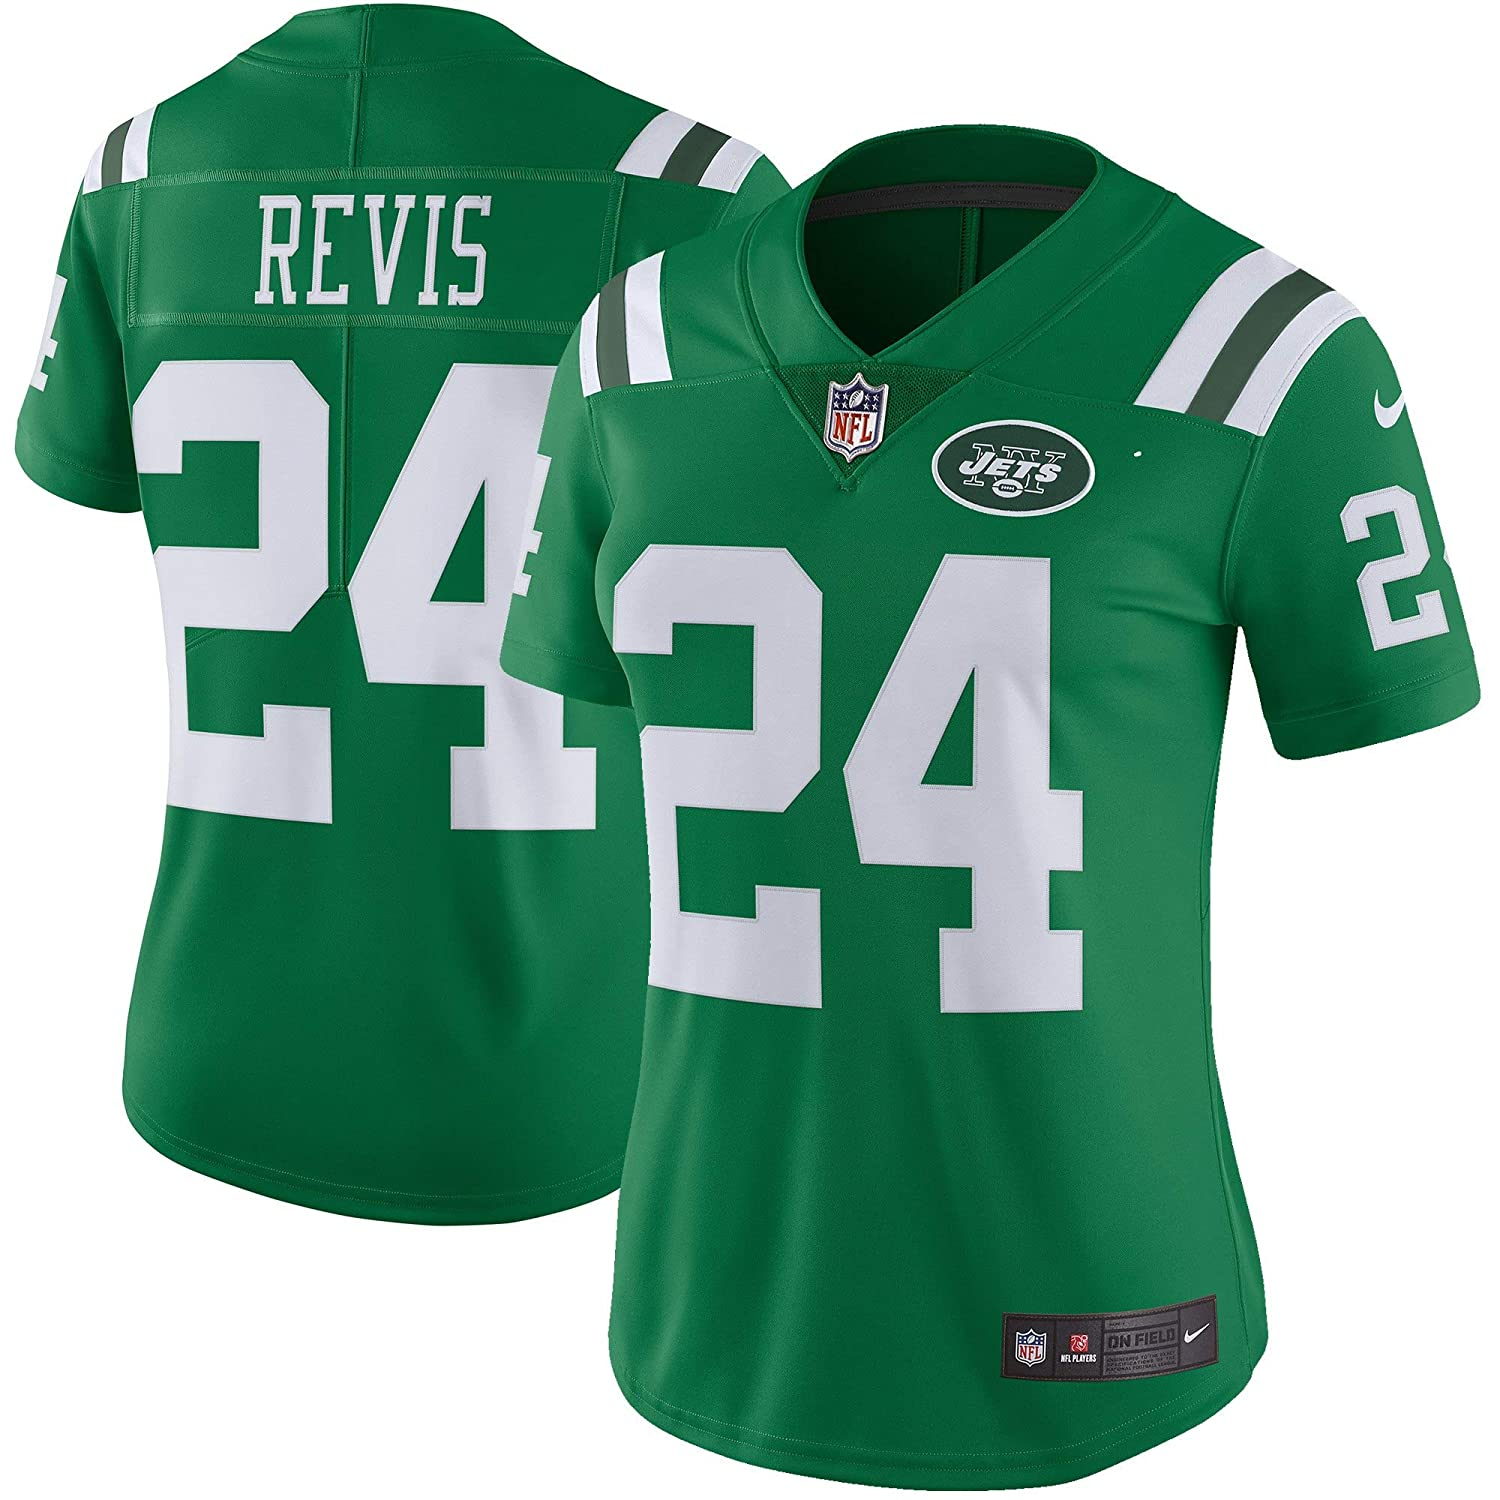 new york 06f38 d1620 Amazon.com: Nike Women's Large Darrelle Revis New York Jets ...